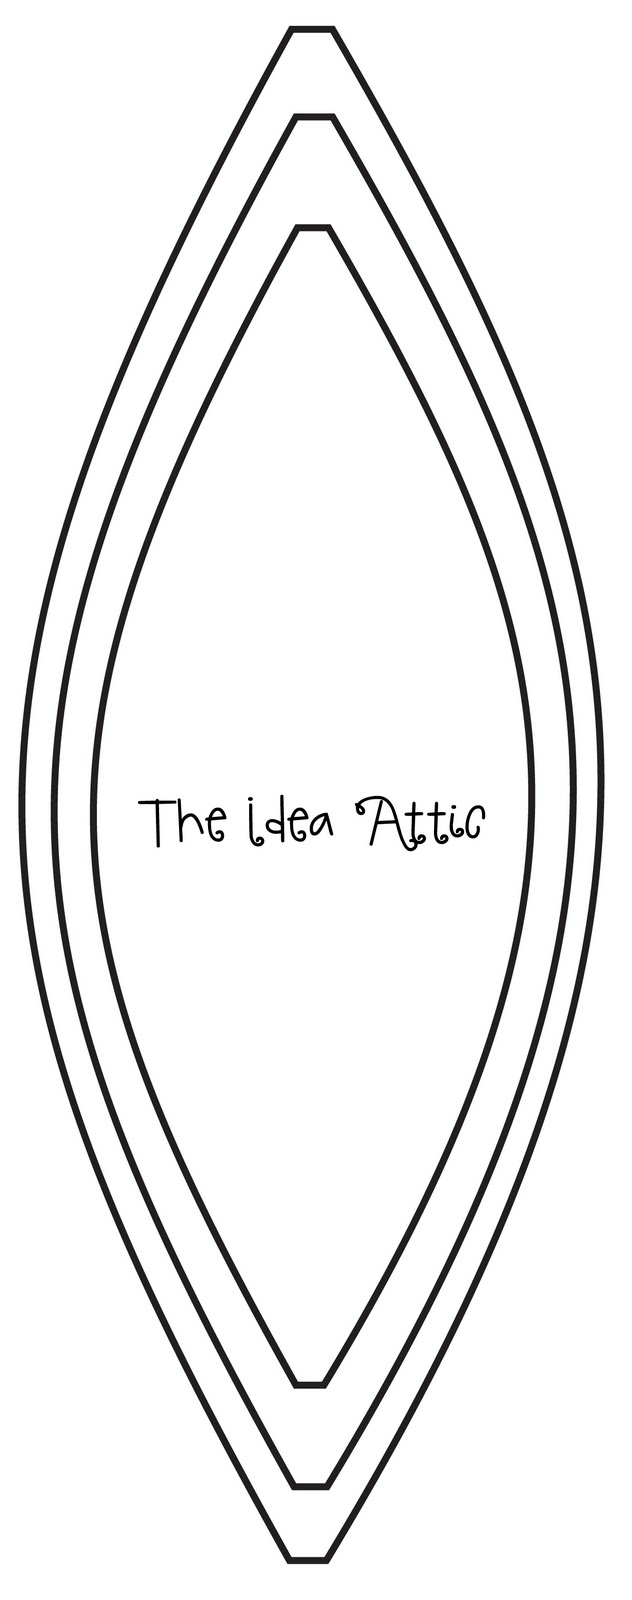 The Idea Attic: Life - Trying to have a Ball